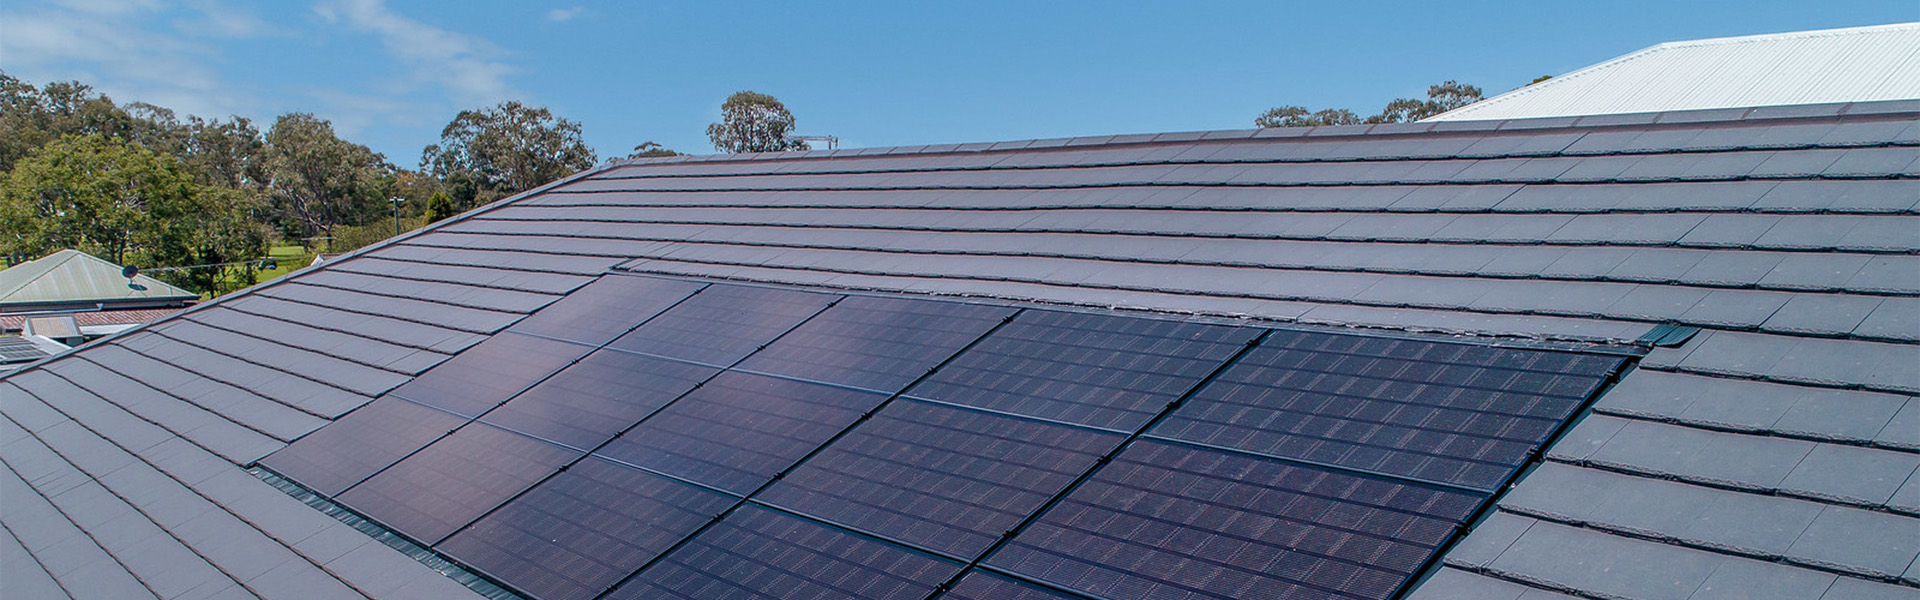 "<h1>""InlineSOLAR""</h1><p>Incorporate InlineSOLAR seamlessly into your new roof or re-roof today! Contact us for a quote.<br /><a href=""contact-us"">Contact Us</a></p>"